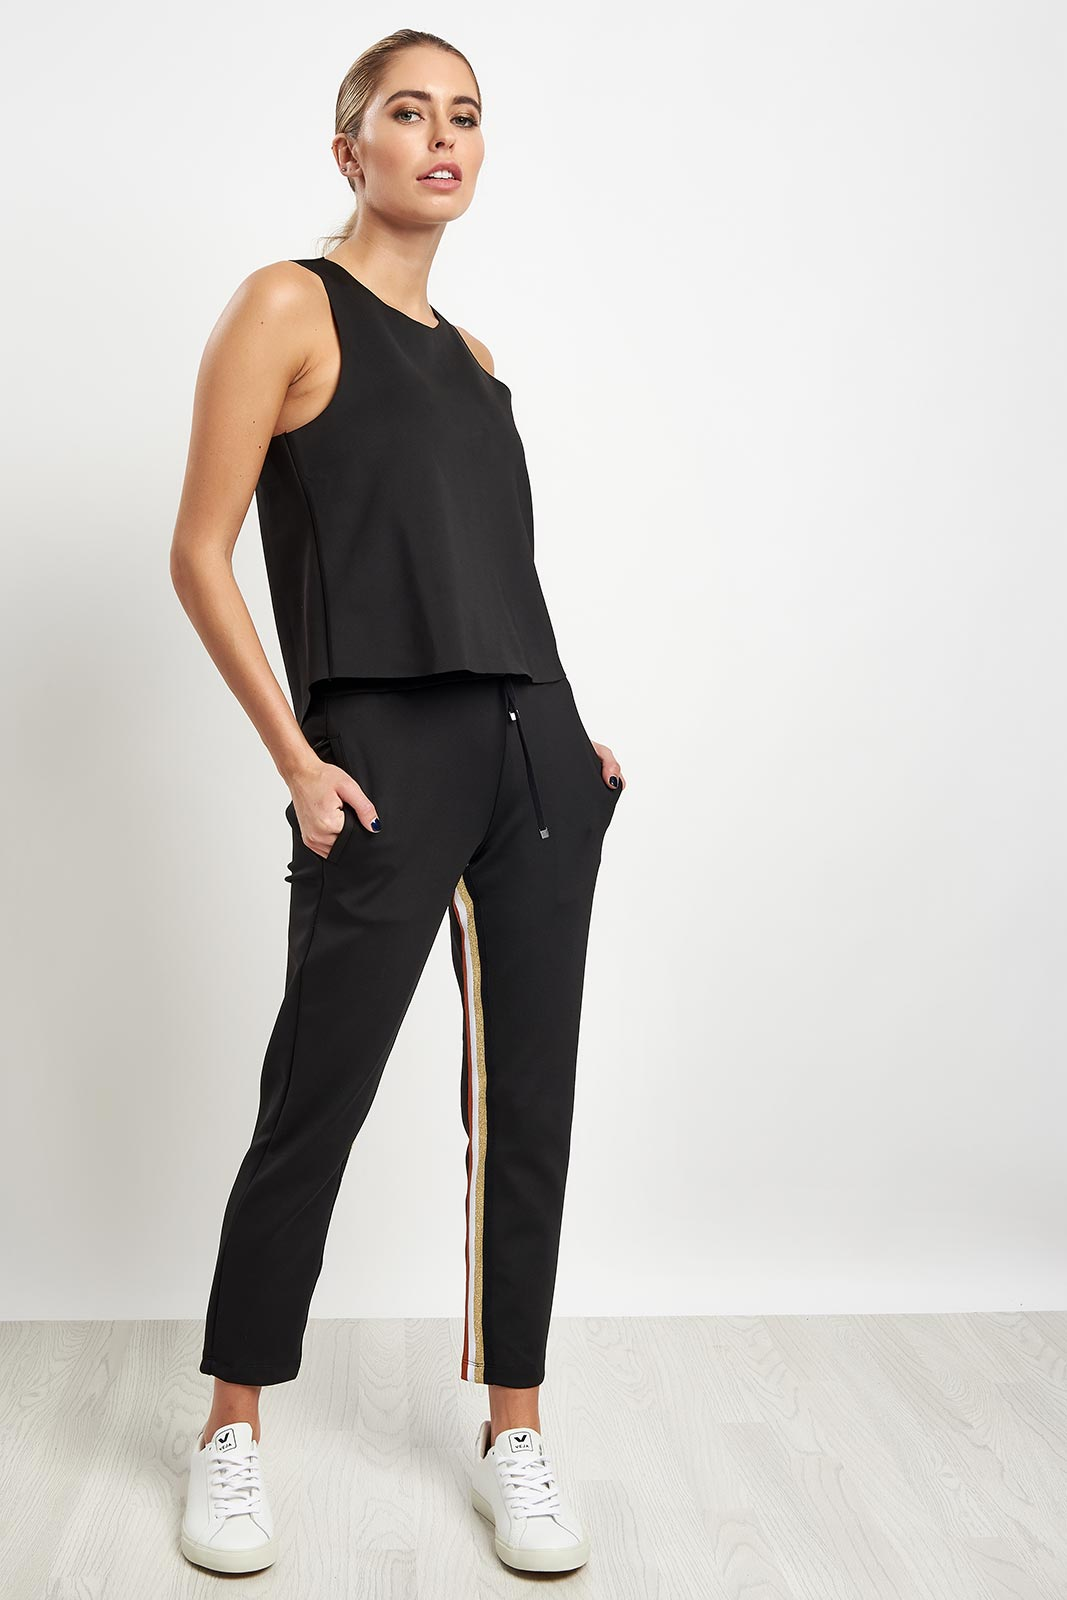 Koral Elizabeth Cropped Pant - Black/Gold image 4 - The Sports Edit